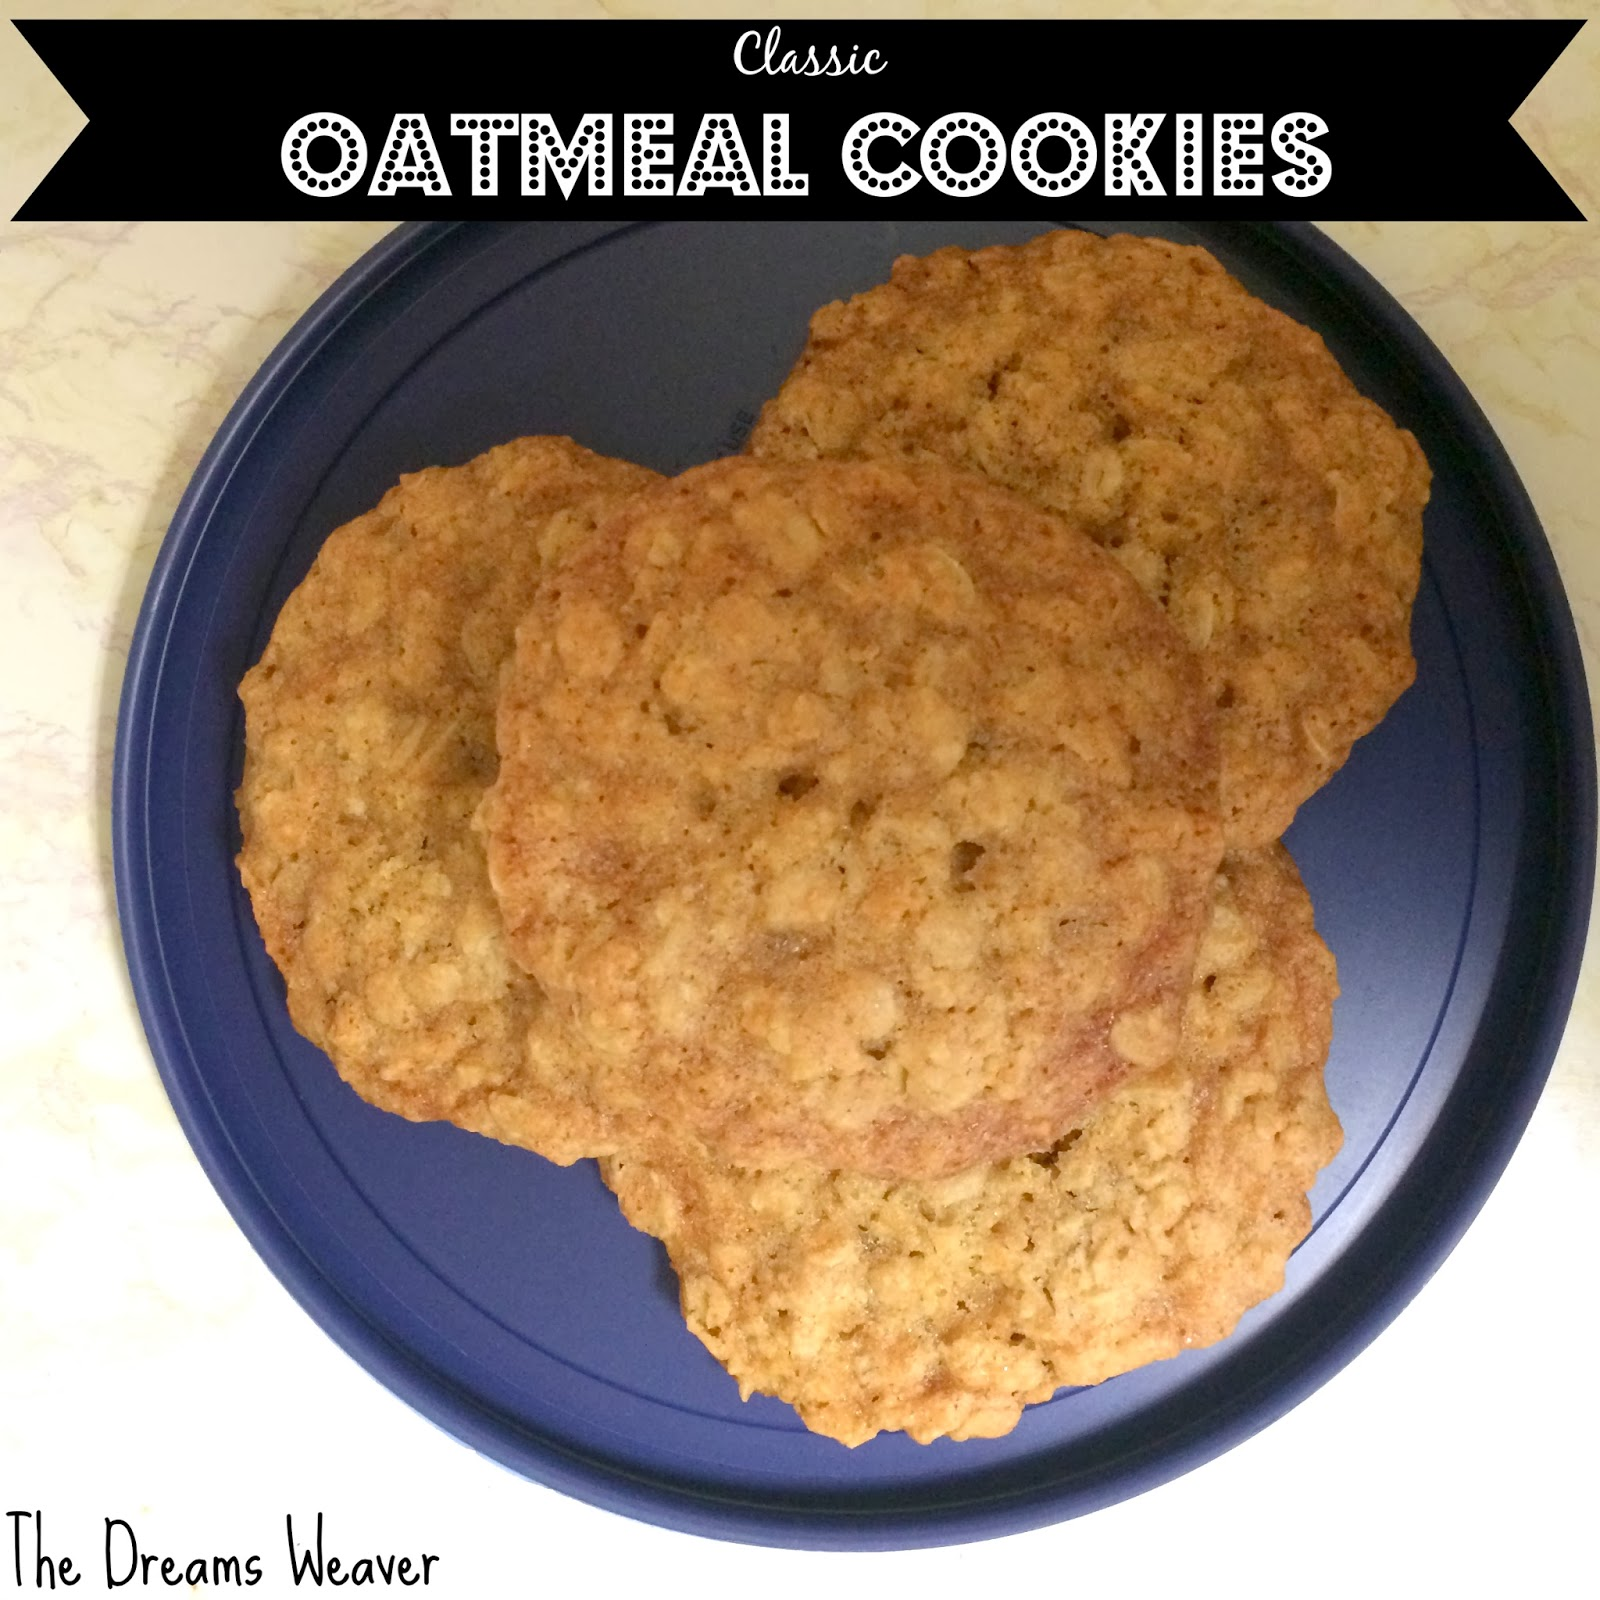 Classic Oatmeal Cookies~ The Dreams Weaver